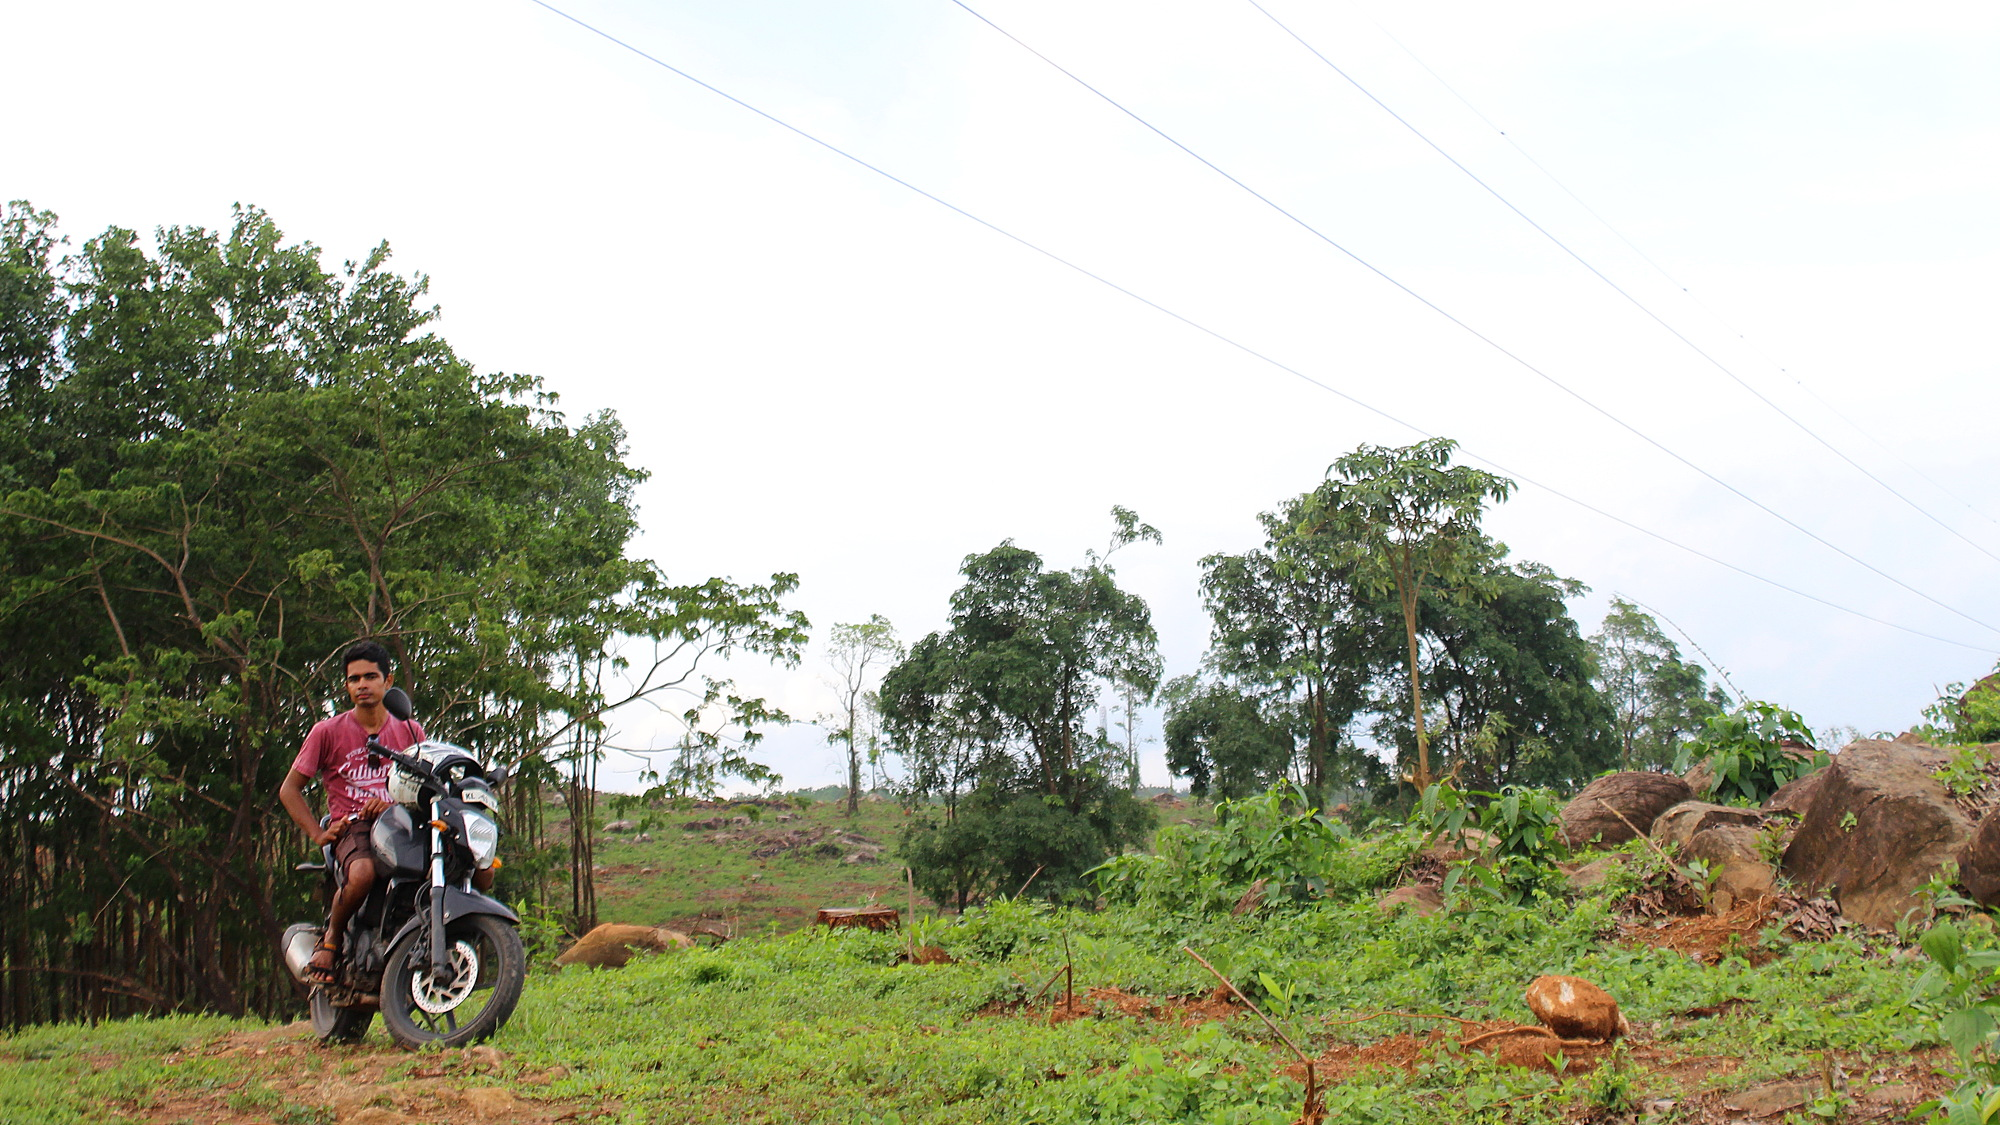 Monsoon travel in Kerala. A young man from Kerala posing in a green hill with a motorcycle.